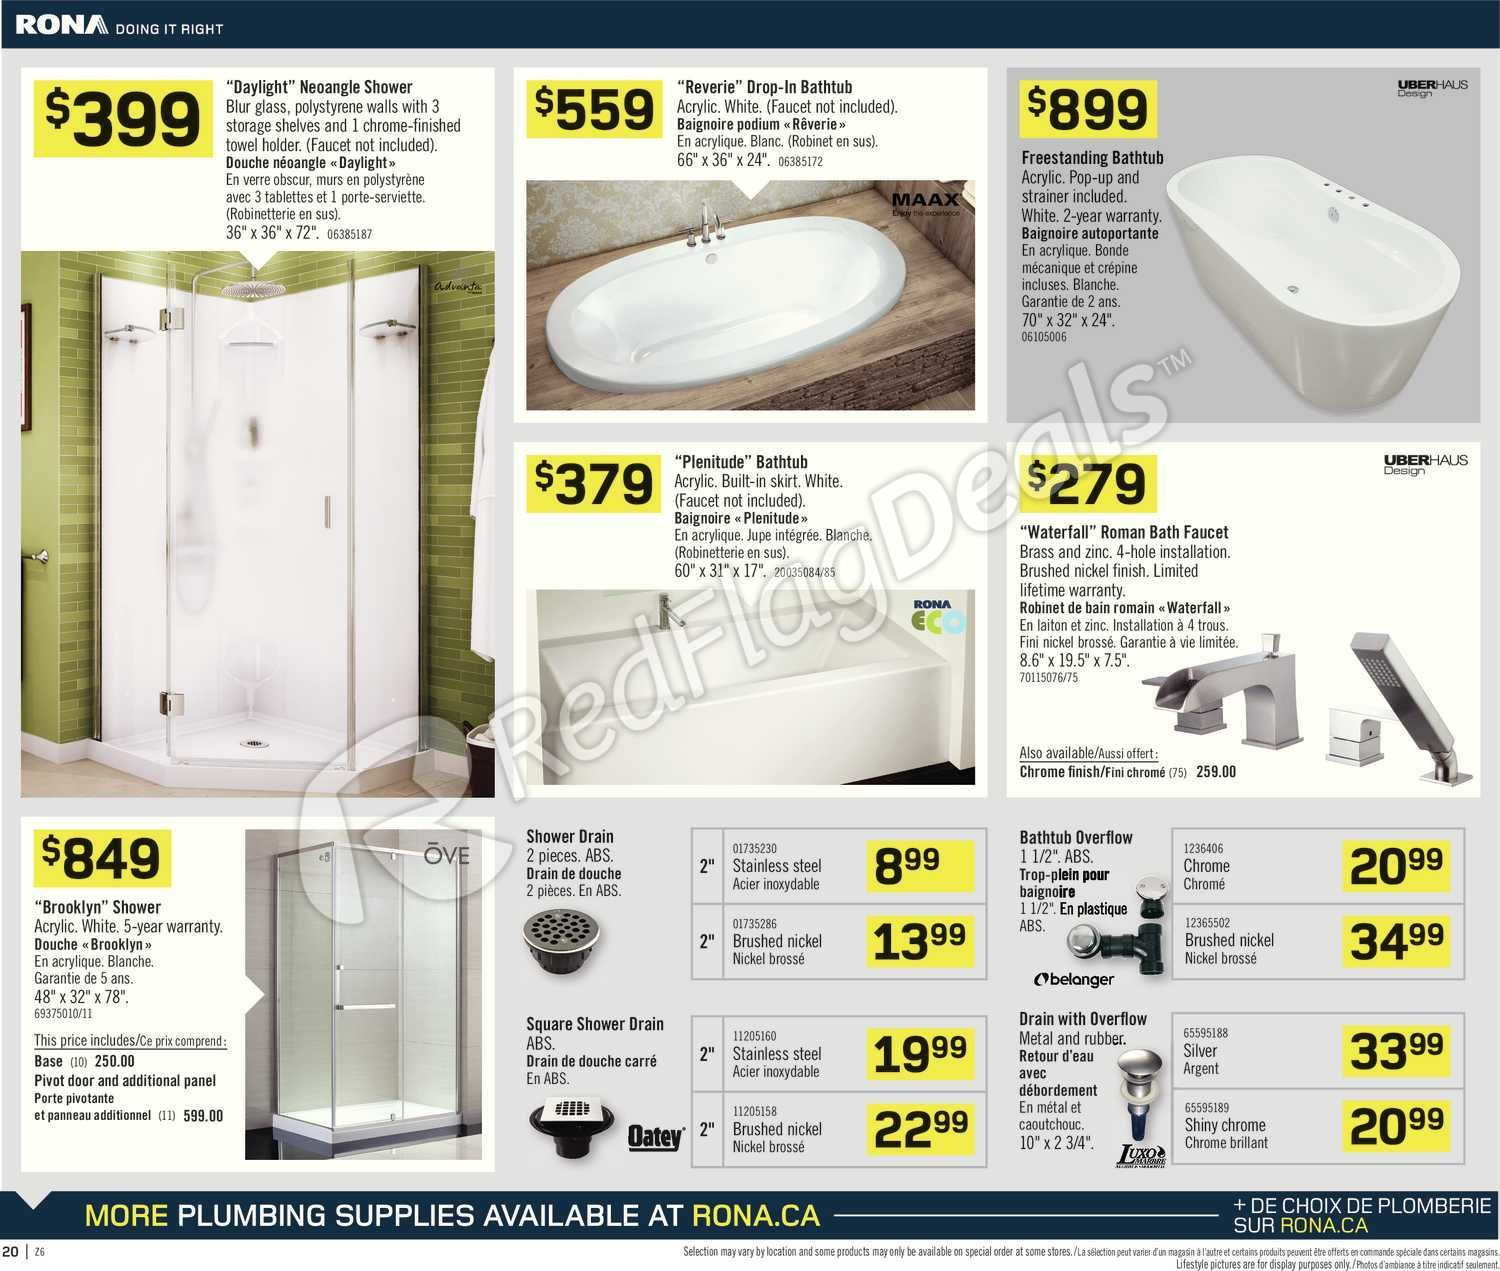 Rona Weekly Flyer Weekly Flyer Pour Bien Faire May 8 14